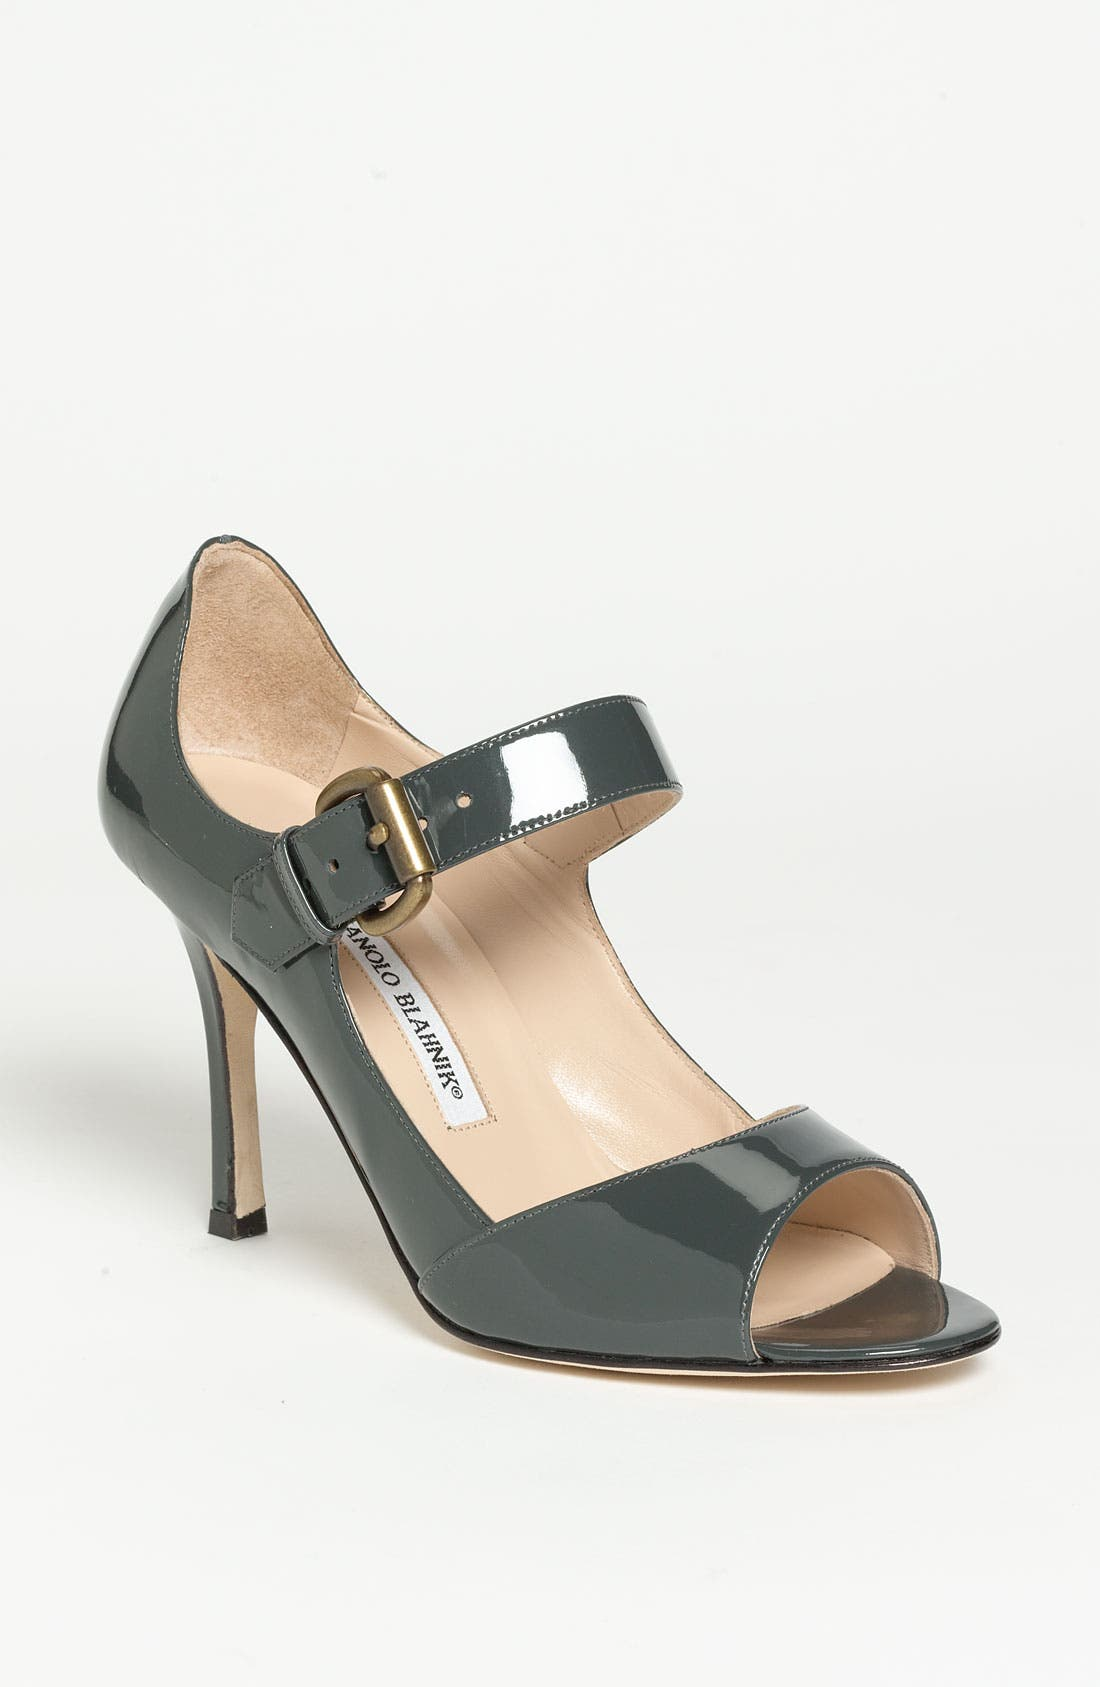 Alternate Image 1 Selected - Manolo Blahnik 'Prejuda' Pump